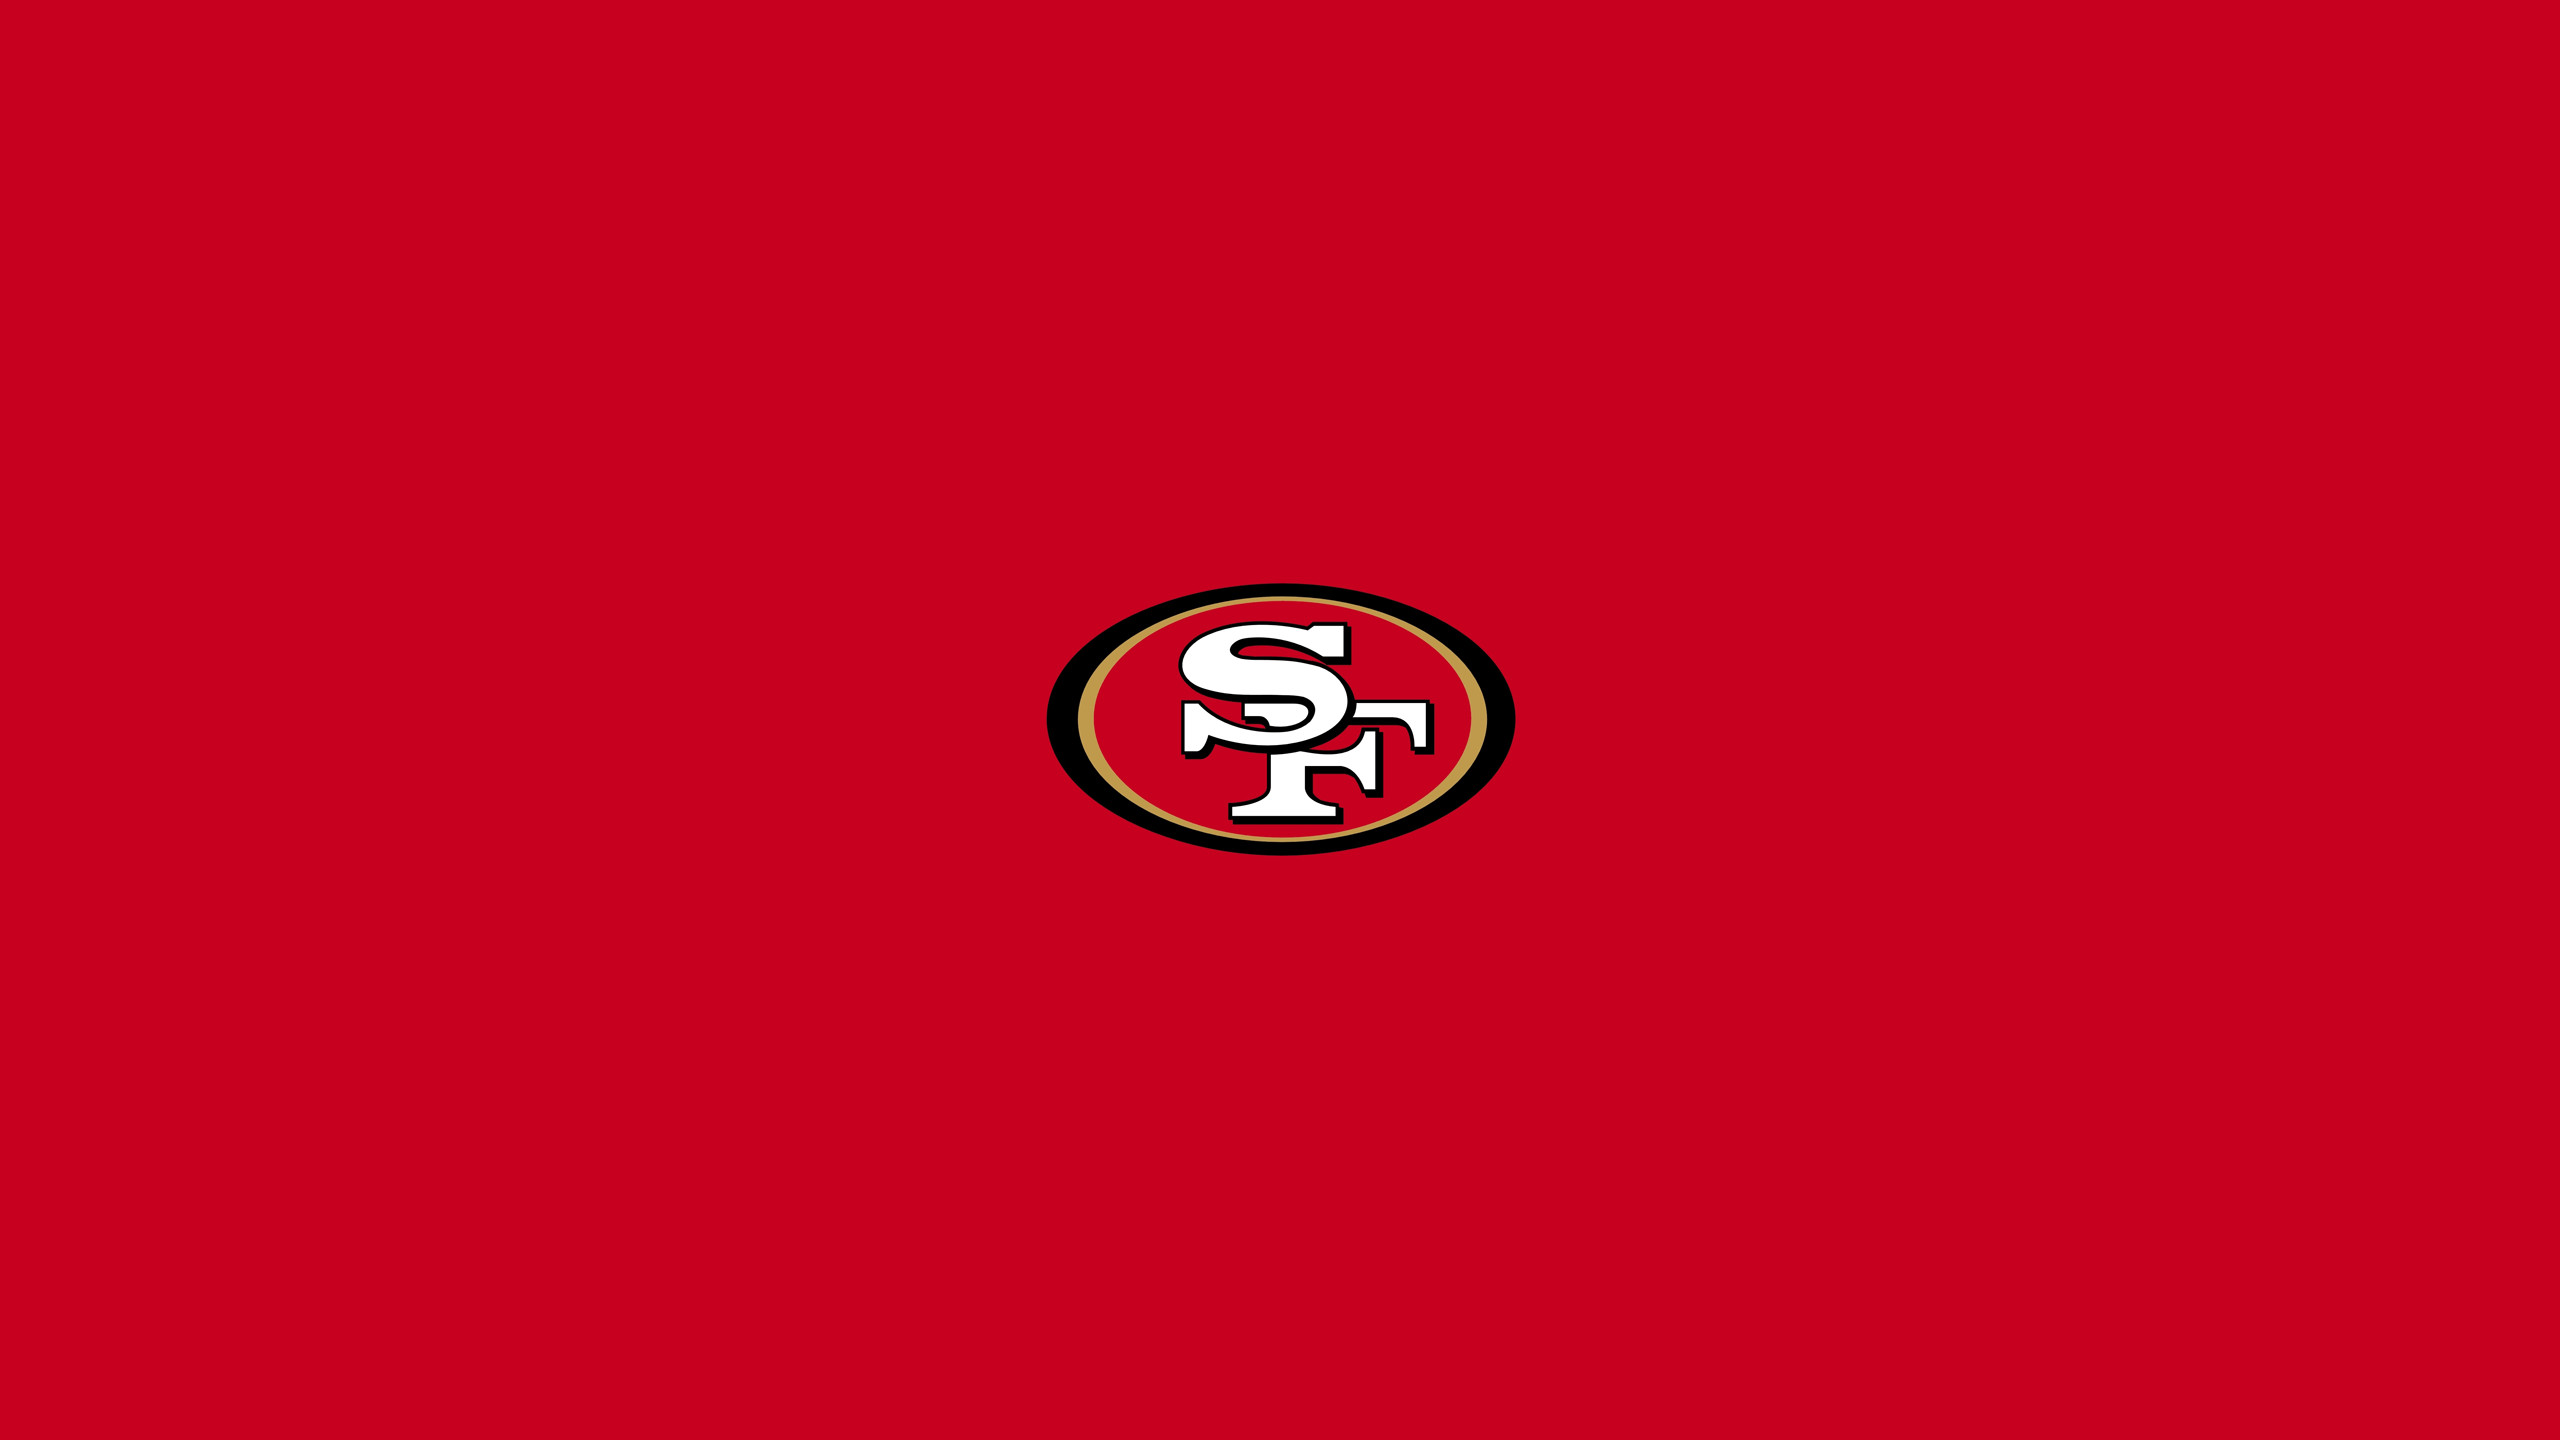 2560x1440 San Francisco 49ERS HD Wallpapers - HD Wallpapers Inn